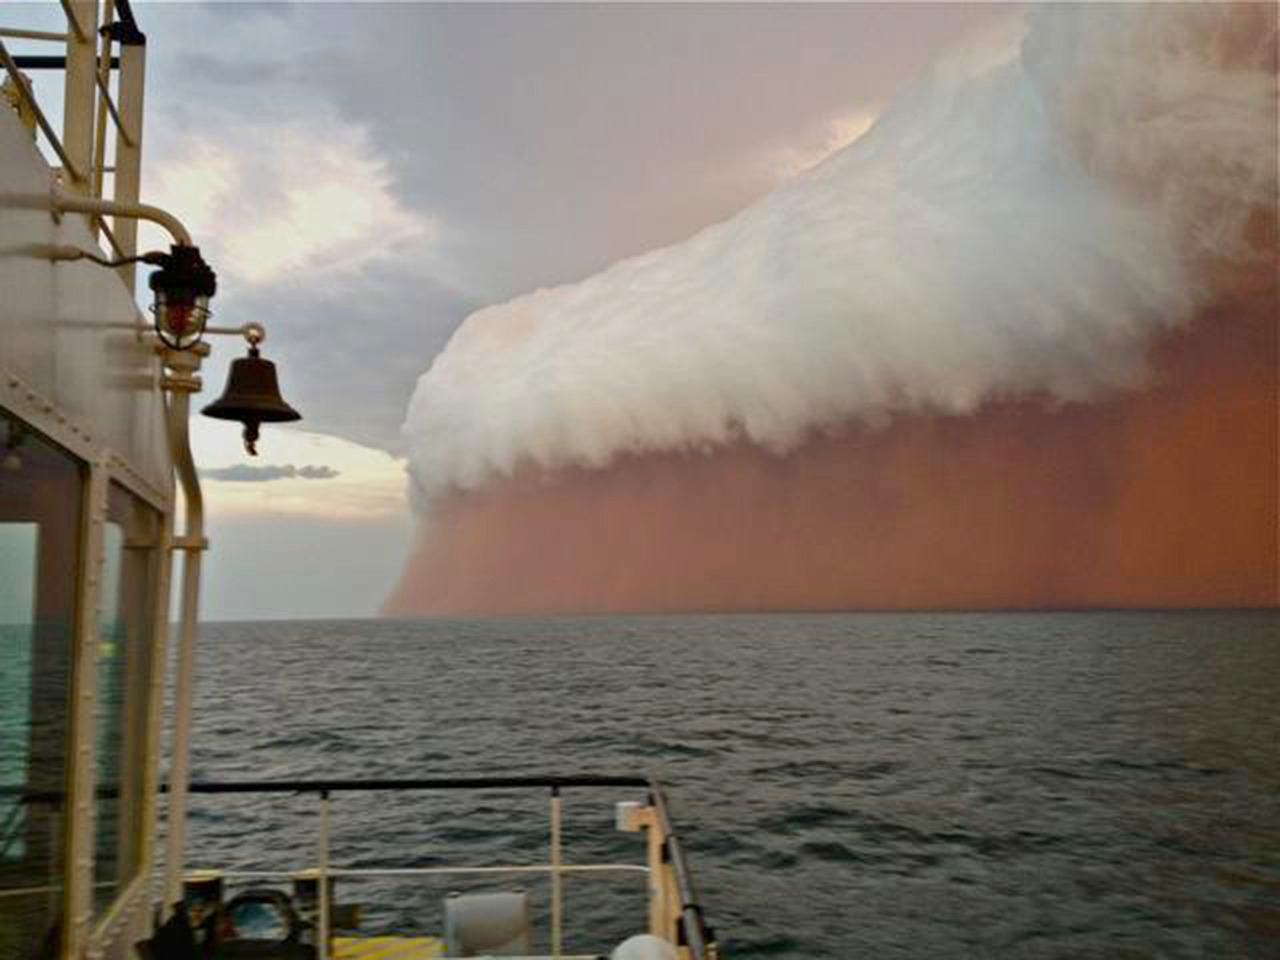 Red Storm. This photo shows a towering red dust storm over the ocean ahead of the cyclone approaching Onslow on the West Australian coast. Tug boat worker Brett Martin, who captured the fearsome pictures 25 nautical miles from the town of Onslow, reported conditions were glassy and flat before the storm. Tempête rouge. Cette incroyable image montre une gigantesque tempête de poussière rouge sur l'océan avançant en direction de la côte ouest de l'Australie tout droit vers la ville de Onslow. L'employé du bateau, Brett Martin, a pris cette effrayante image à 25 miles environ des côtes australiennes où les conditions météos sont pour l'instant tout à fait normales et paisibles. PHOTOGRAPHER : AFP PHOTO / Brett MARTIN / Perth Weather Live